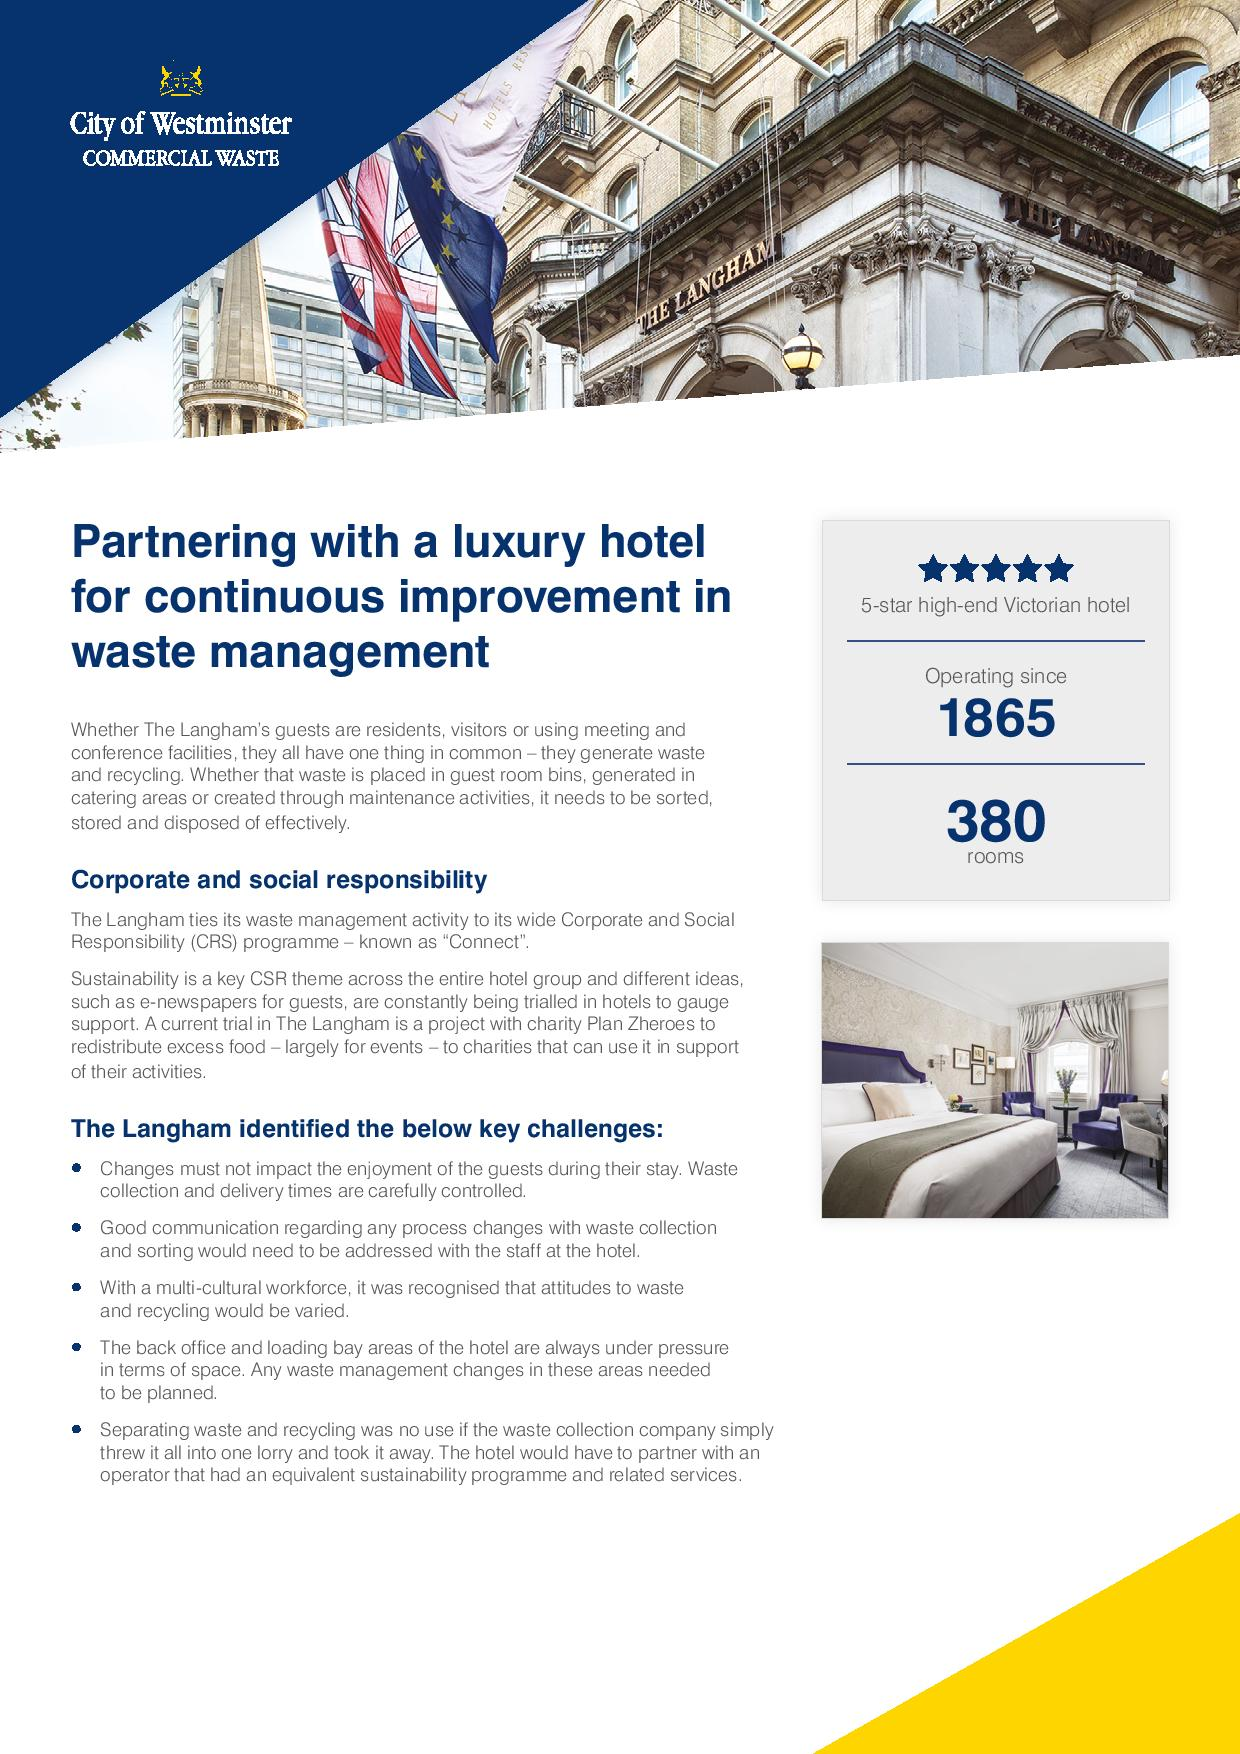 Westminster City Council Commercial Waste Services The Langham London Hotel Case Study (2)-page-001